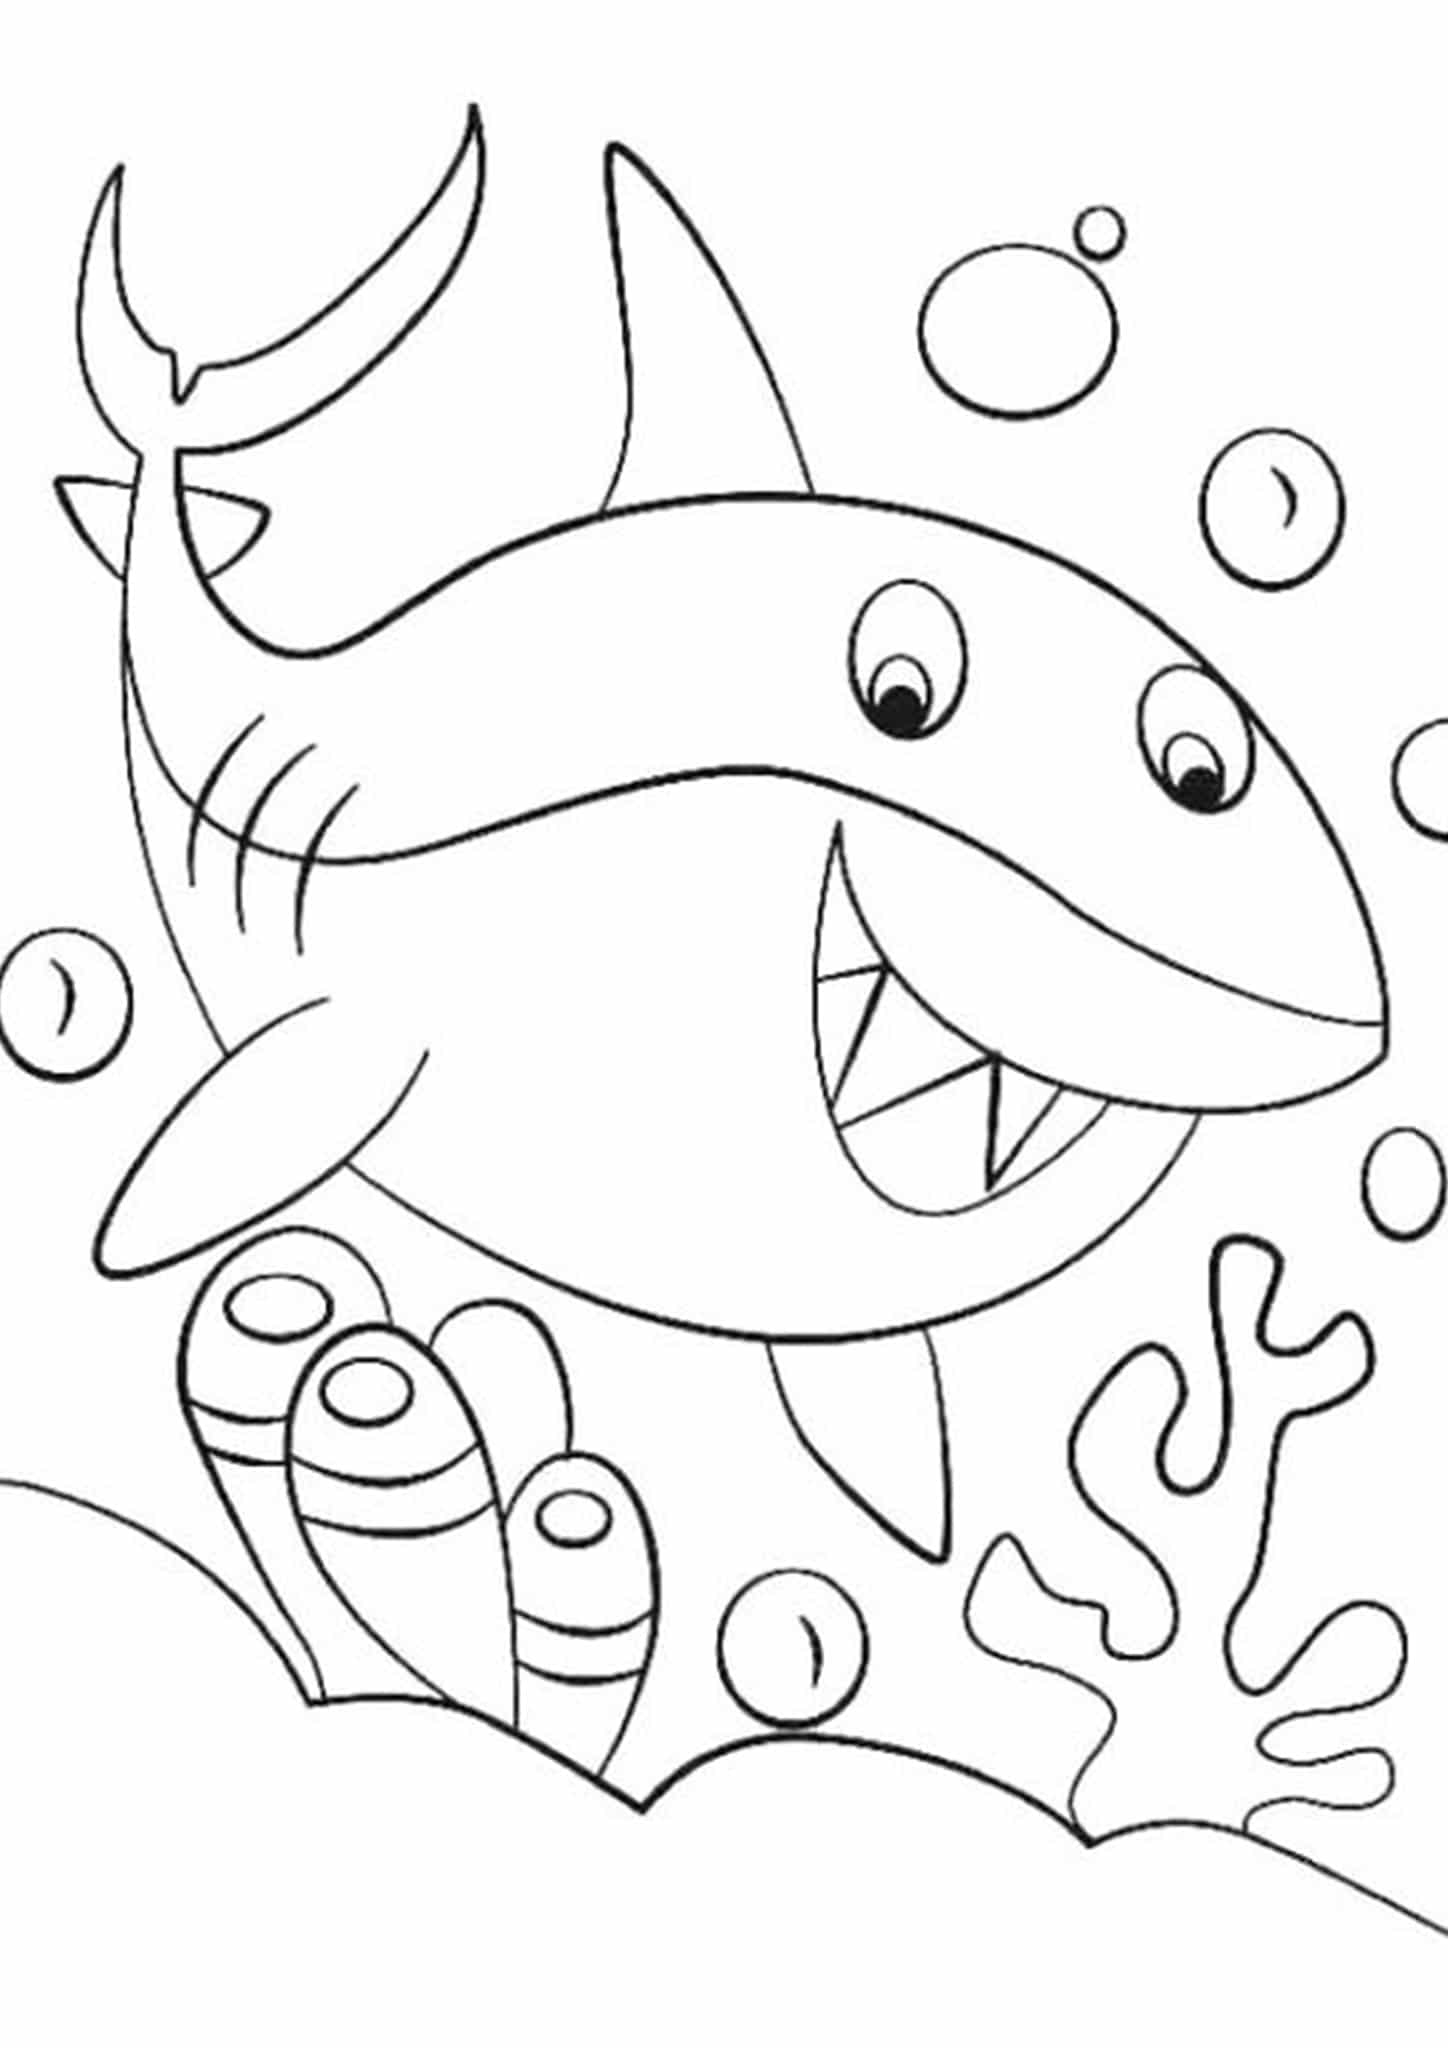 sharks pictures to color big angry sharks coloring pages for kids etk printable color to sharks pictures